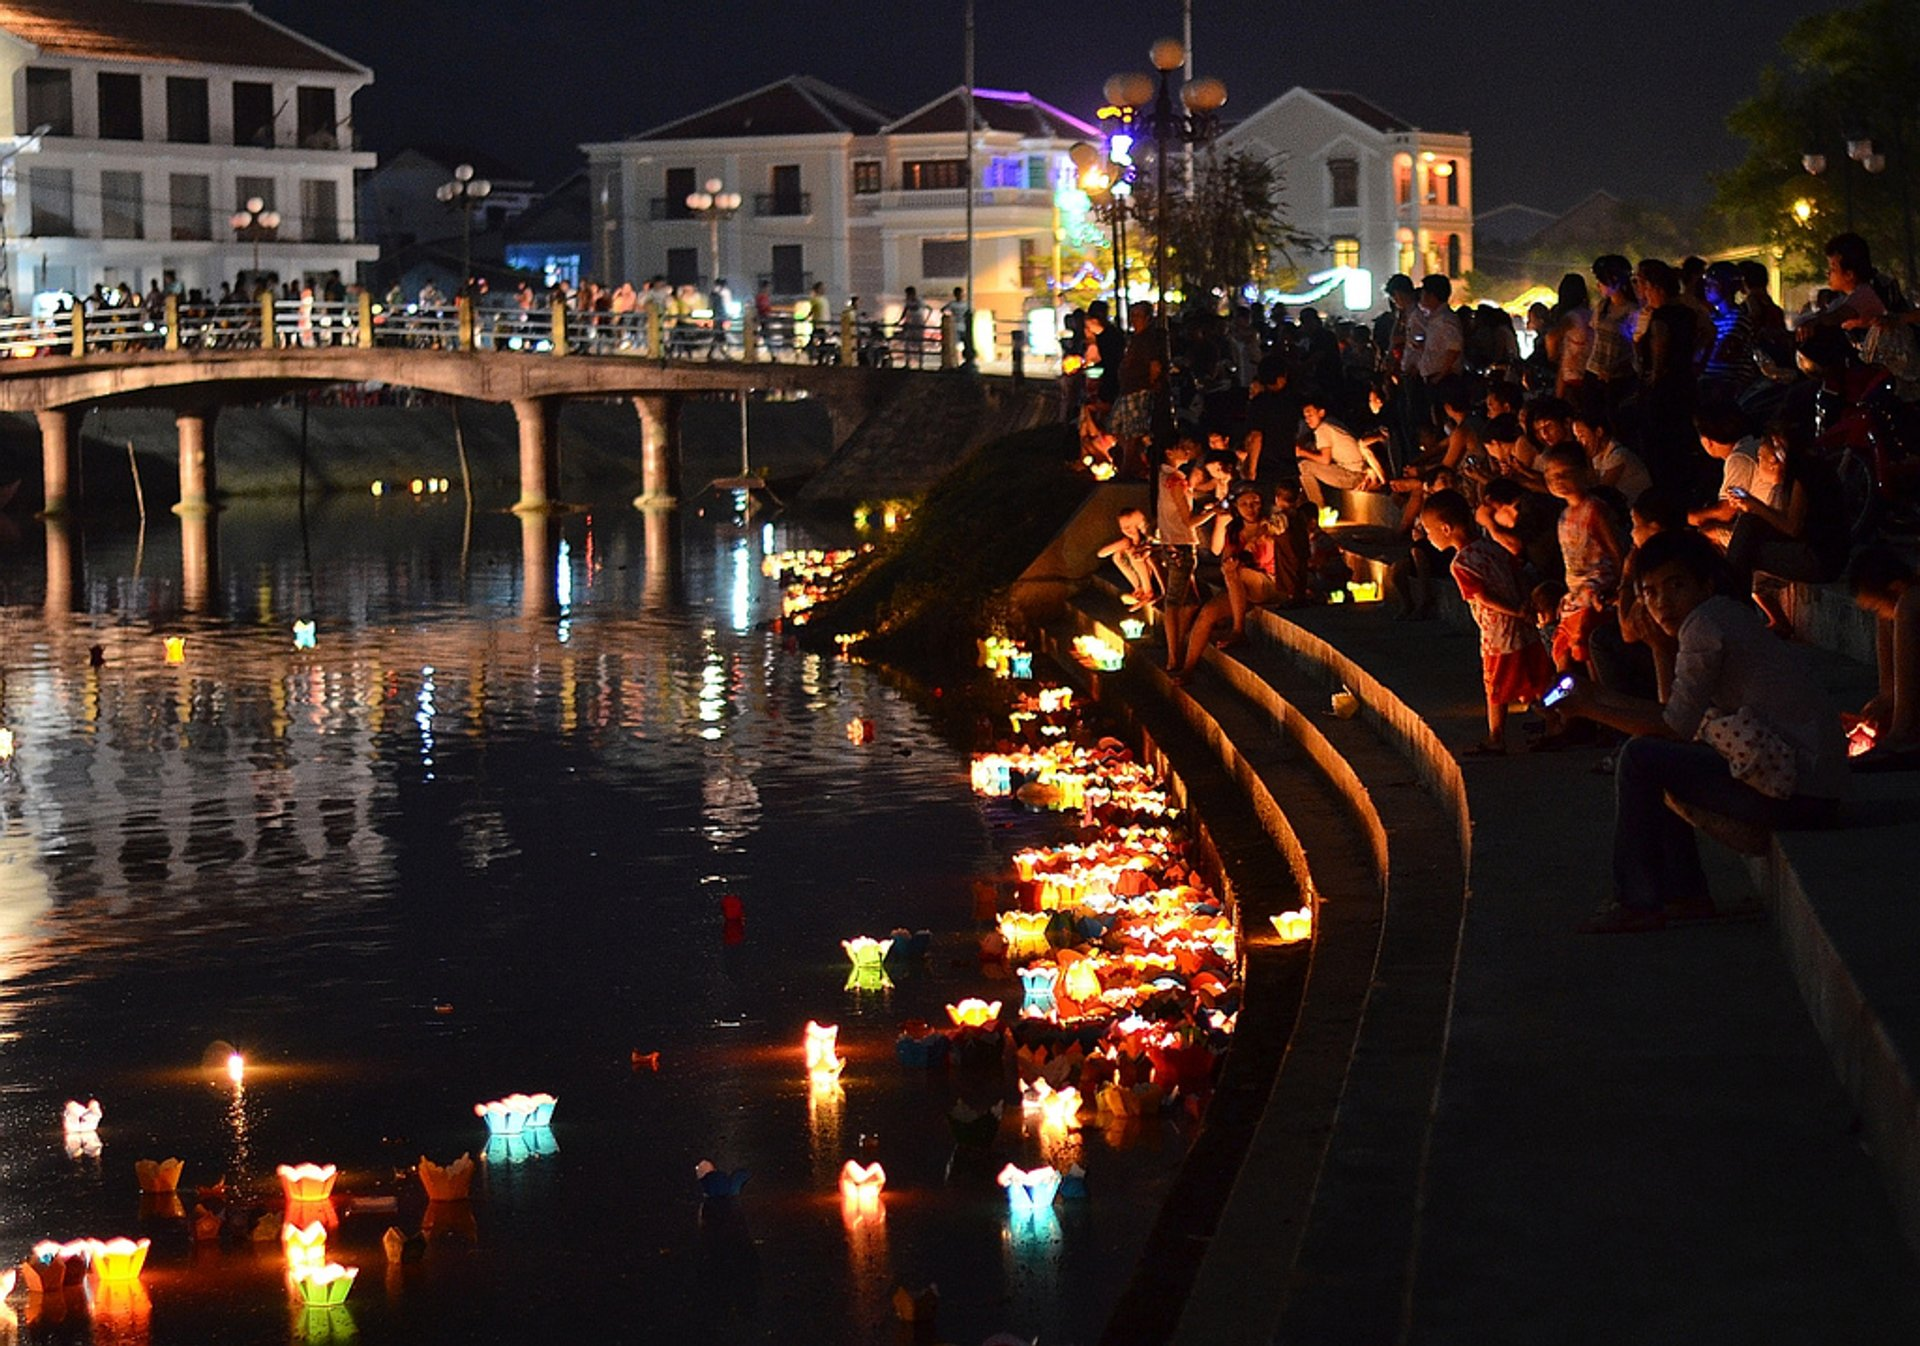 Hoi An Lantern Full Moon Festival in Vietnam 2020 - Best Time